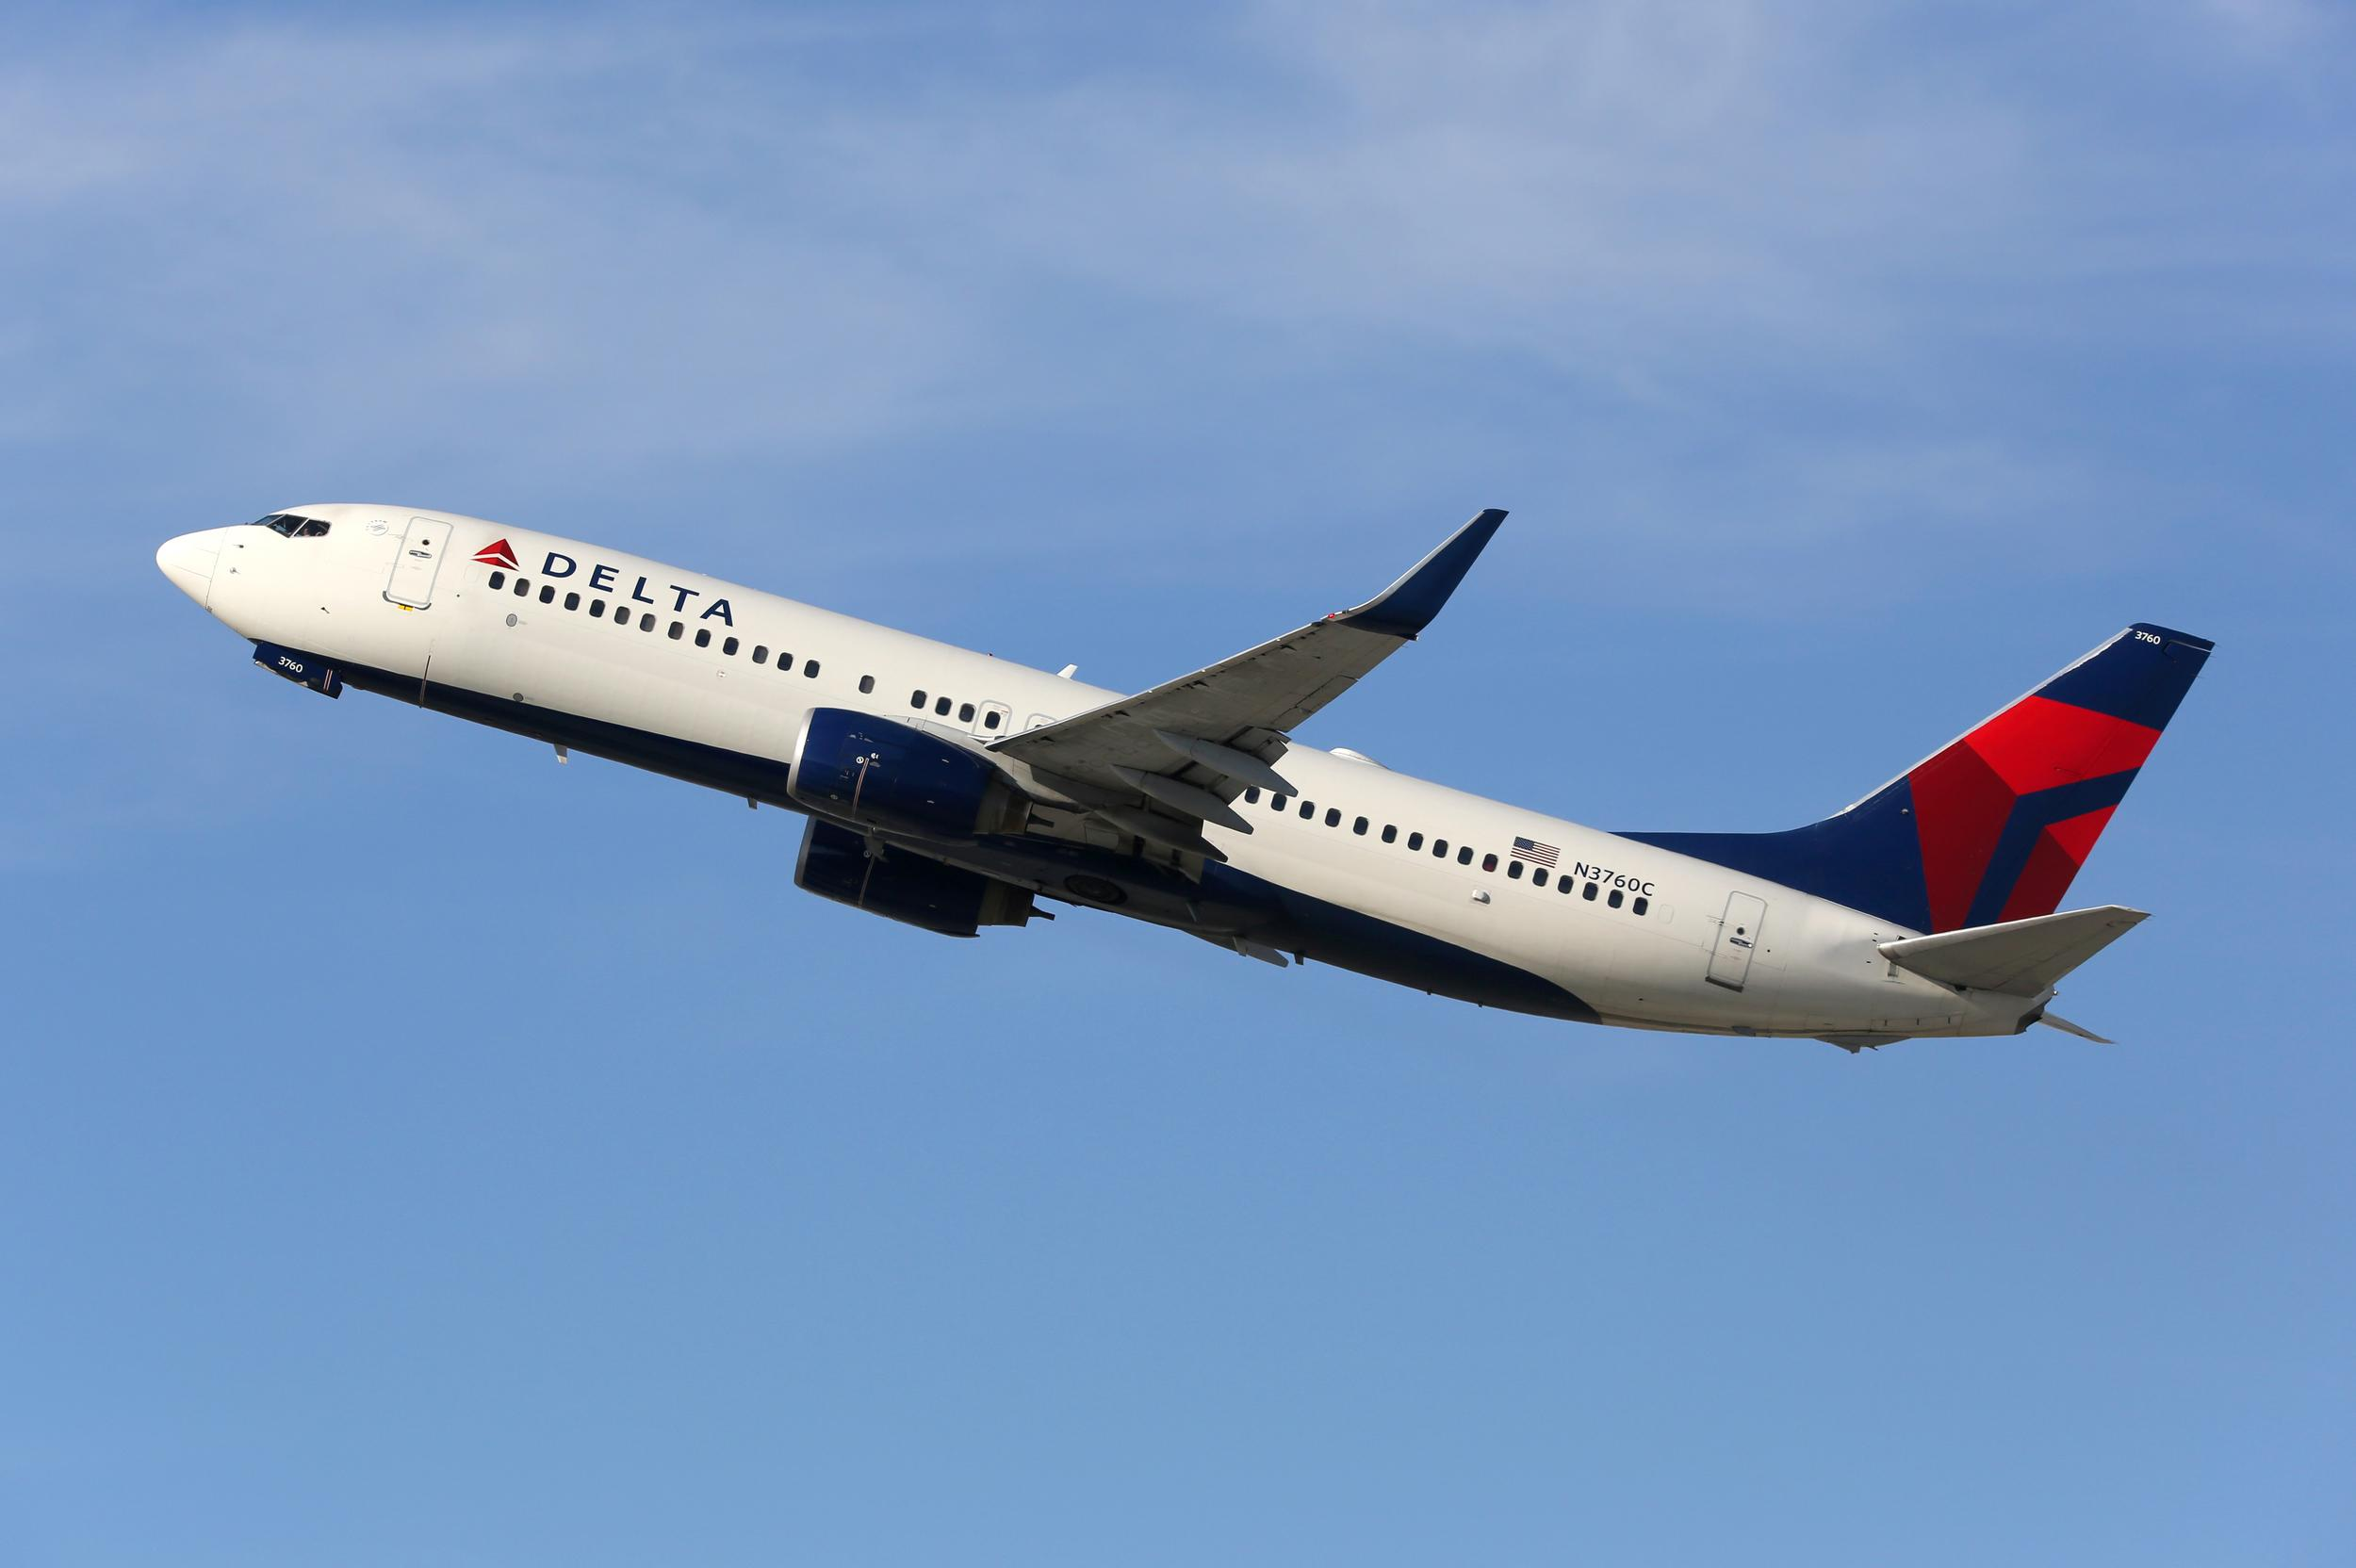 """A <a href=""""https://www.aol.co.uk/travel/2014/06/14/drunk-honeymooner-punches-flight-attendant-delta/"""" target=""""_blank"""">drunk honeymooner on a Delta flight from Japan to Hawaii punched a flight attendant after he got upset when they would not clear away his meal tray</a>. The steward said his hands were full and Kenji Okamoto allegedly """"threw a roundhouse type punch"""" at a flight attendant who intervened. The passenger was flying first-class to his honeymoon destination and cabin crew noticed he was drunk before take-off. The crew told authorities that Okamoto apologised while crying and remained calm for the rest of the flight, eventually falling asleep. He was banned from flying with Delta again and missed his honeymoon when he was arrested at the airport."""